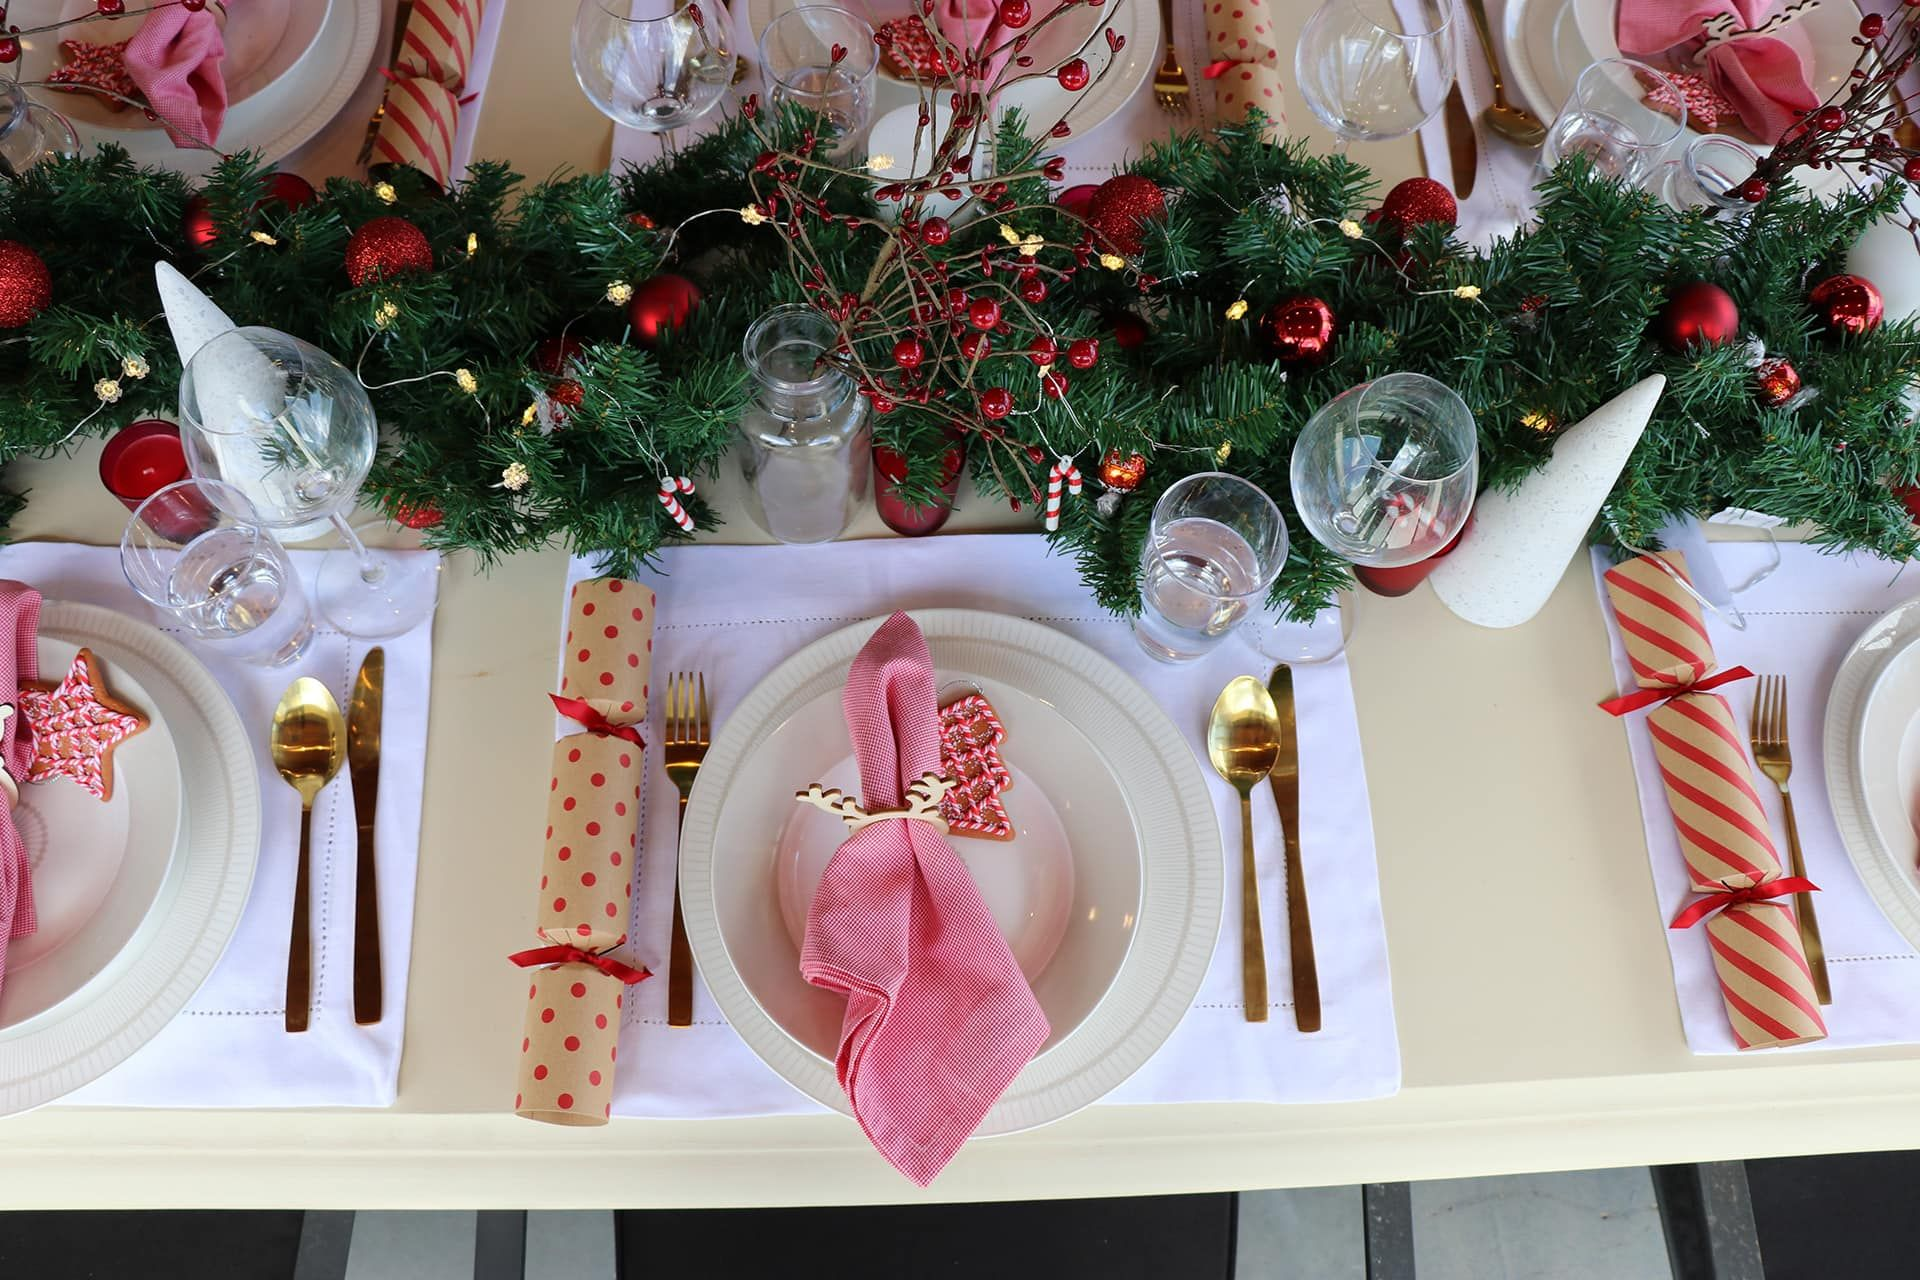 Cheap Christmas Table Setting Ideas In Red And Gold Colours Christmas Table Styling Ideas With W Christmas Table Christmas Table Settings Christmas Tablescapes